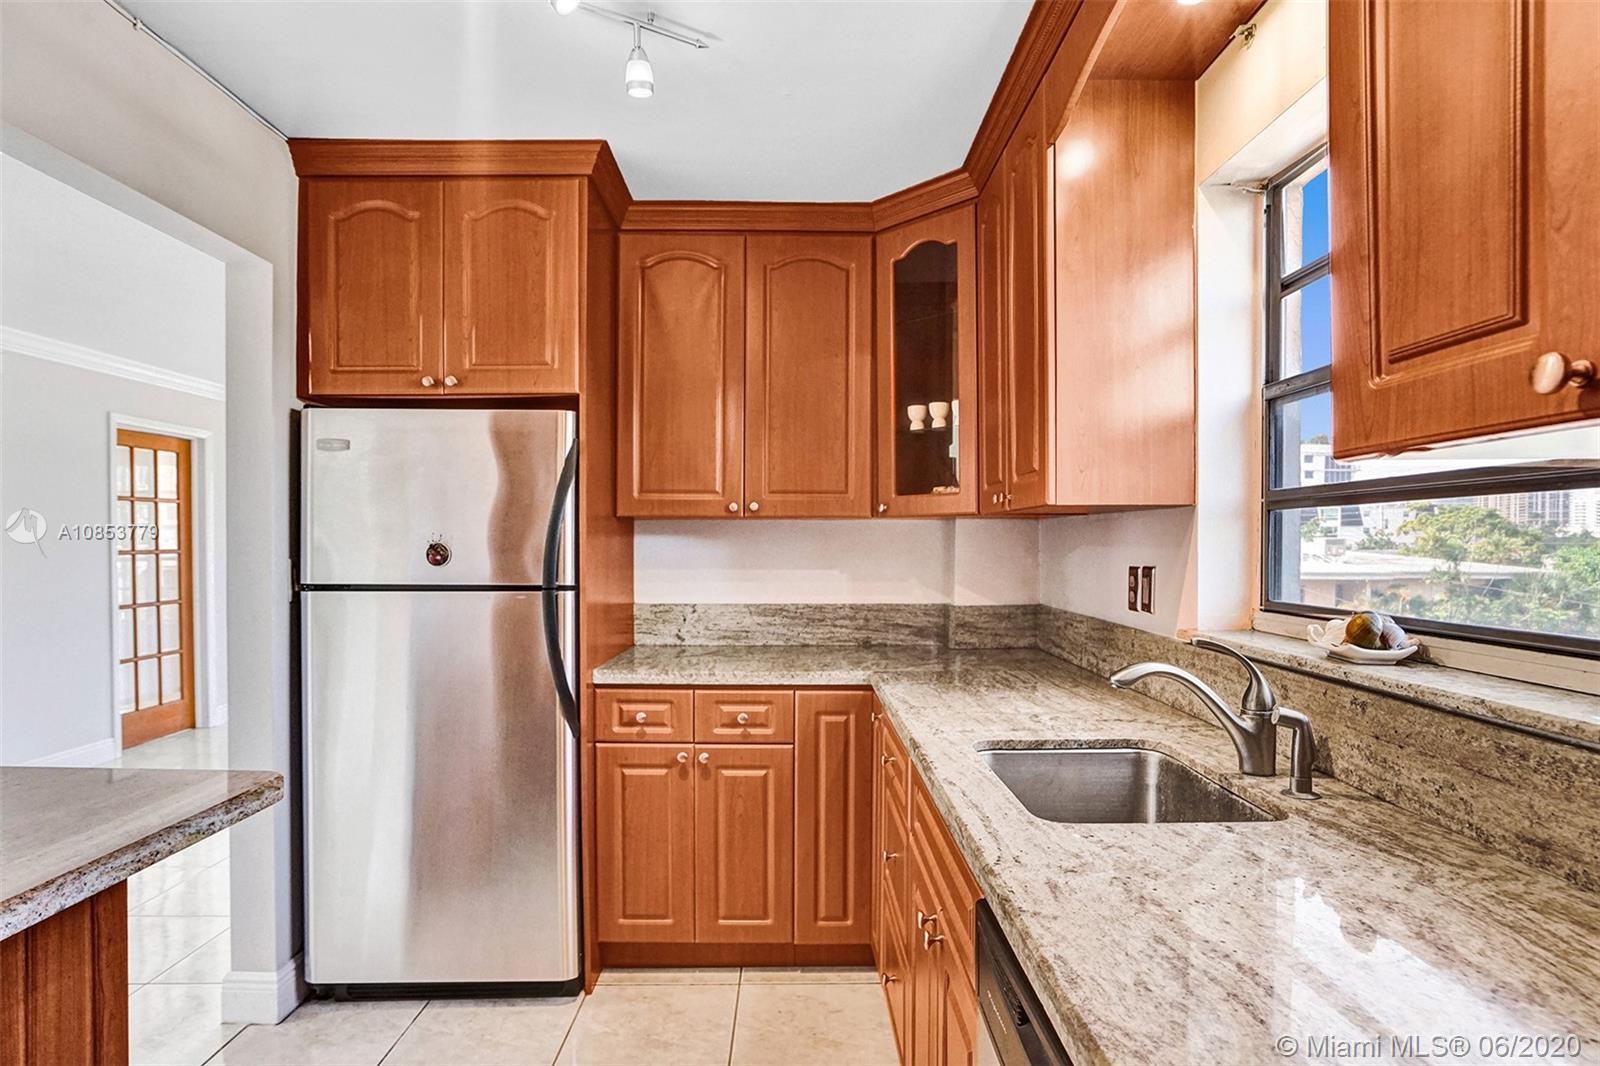 Spacious corner unit flooded with natural light and Intracoastal views! Two bedrooms with en-suite baths and tile floors throughout. Live in a quiet boutique 12 unit building. Excellent location in the heart of Bay Harbor Islands, walking distance to fine dining, Bal Harbor Mall, house of worship, beautiful beaches, Kindergarten -8th-grade A-rated school for the past 20 years, and much more. Excellent opportunity for an end-user or an investor, can rent 1st year. Large storage unit and assigned parking space included.